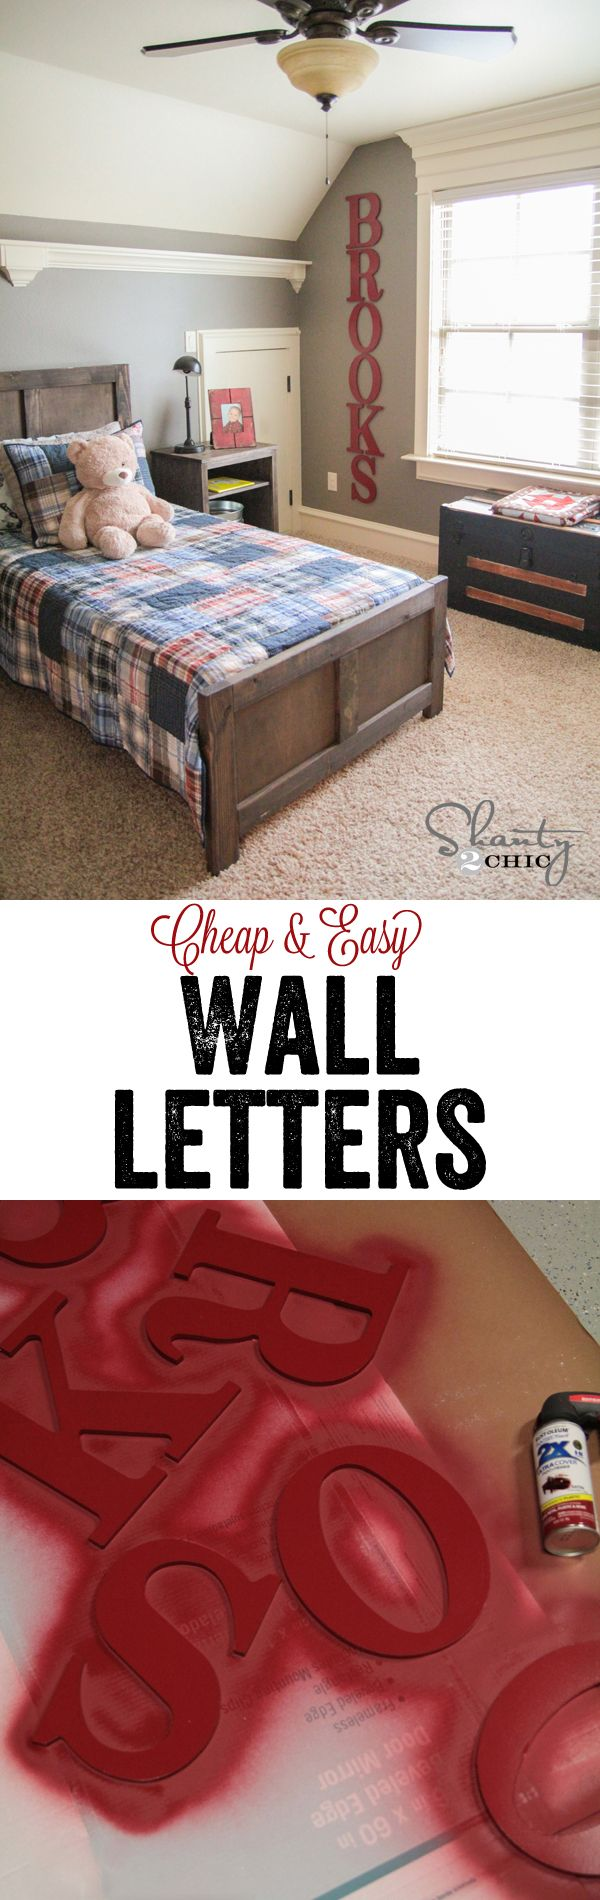 diy letter decor 17 best ideas about decorative wall letters on 21385 | 3e876f2dea6119fe9a0f77c5f501a09b